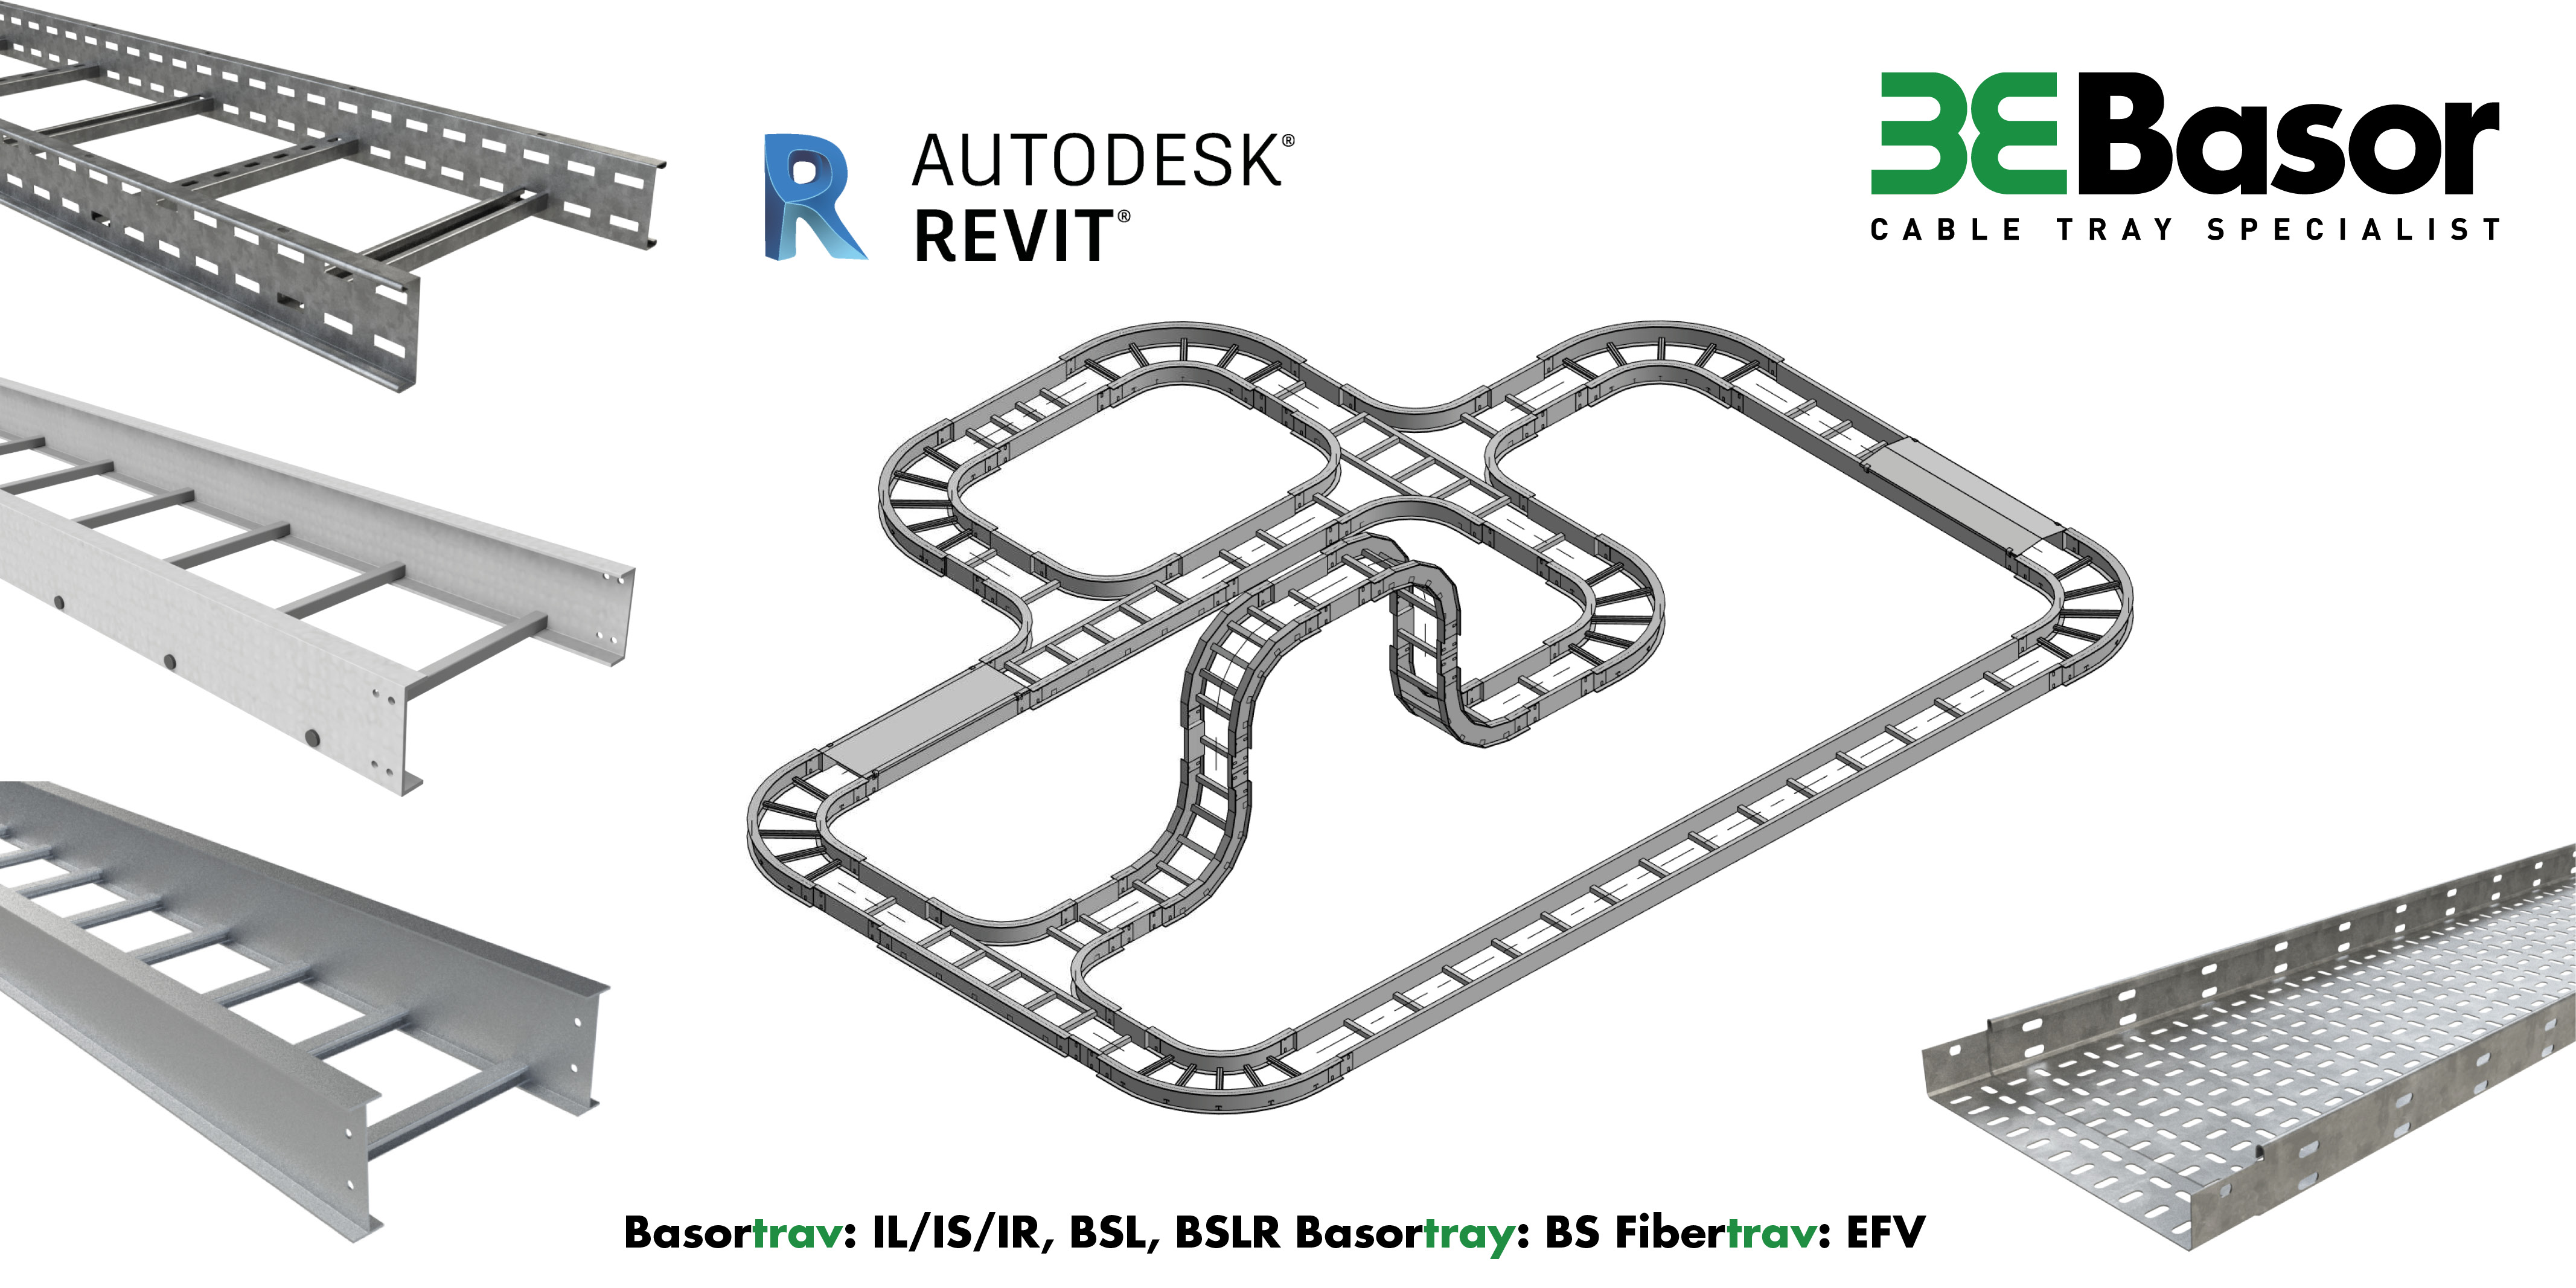 Basor presents its BIM libraries in REVIT format for its product